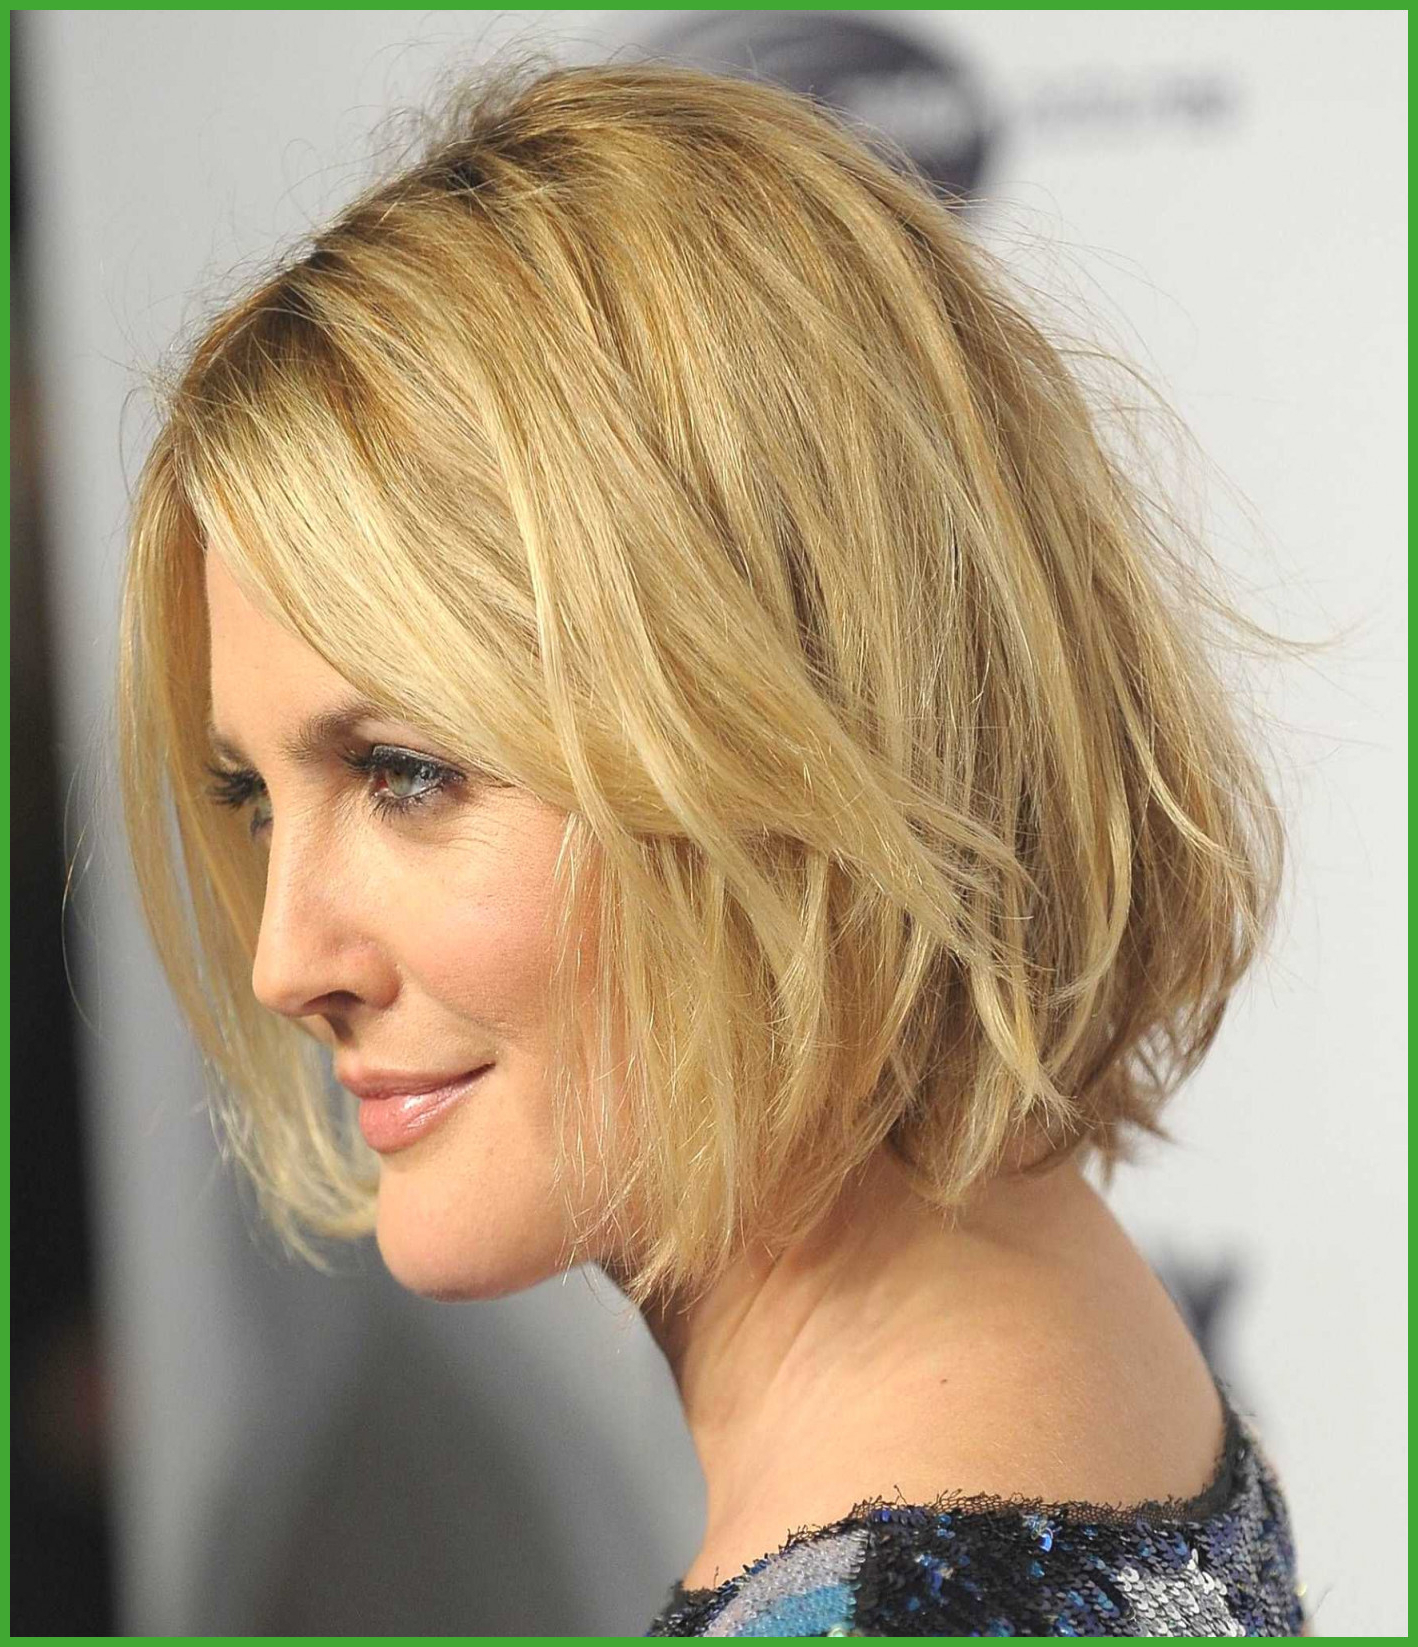 Drew Barrymore Short Hairstyles Awesome 20 Awesome Layered Haircut Pertaining To Drew Barrymore Short Haircuts (View 8 of 25)